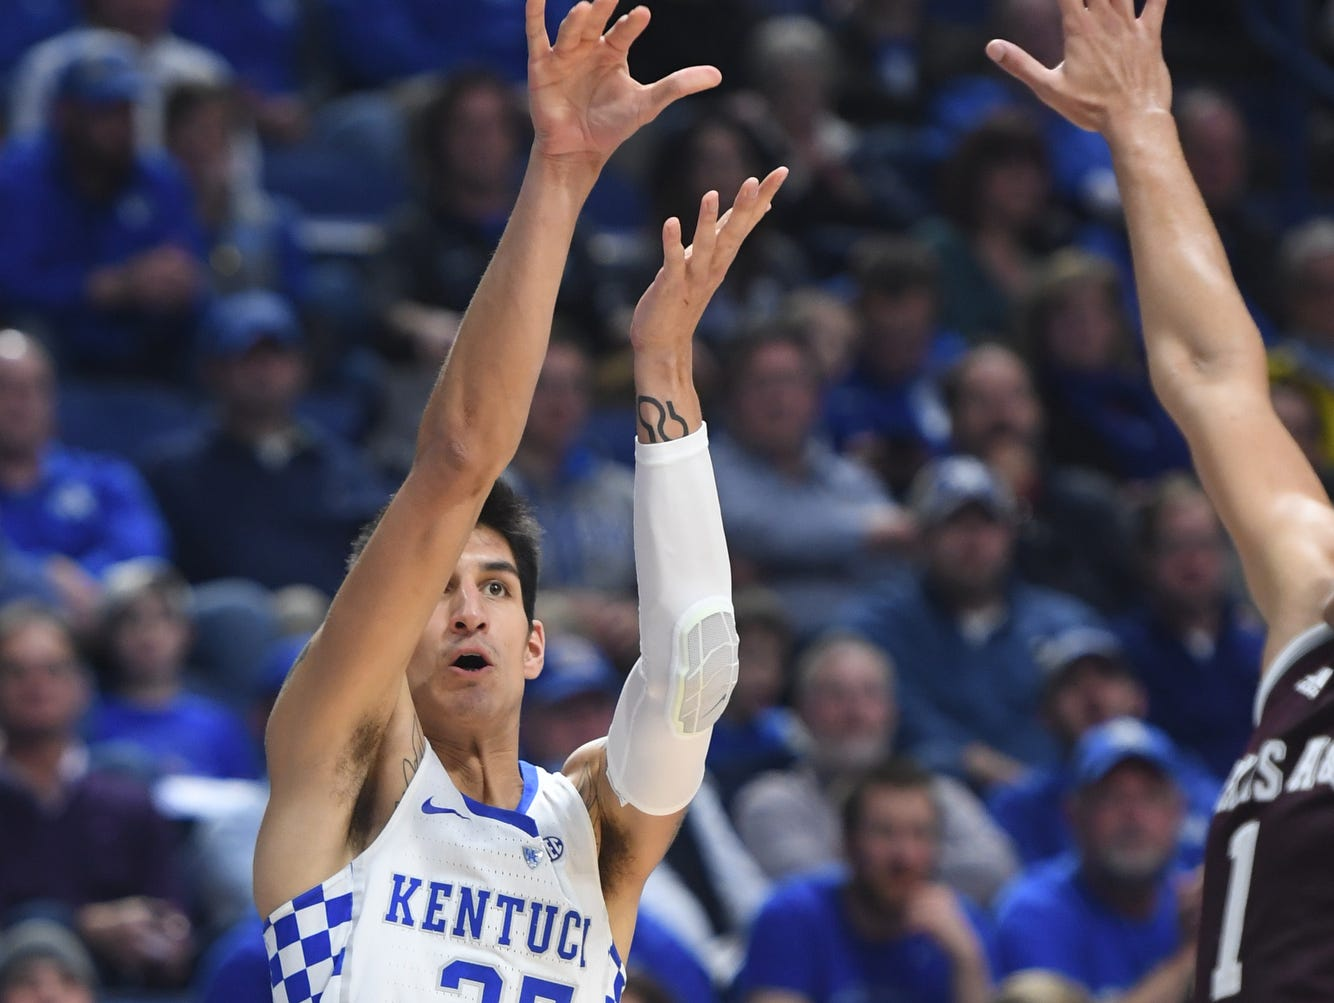 UK's Derek Willis shoots a three during the University of Kentucky basketball game against Texas A&M at Rupp Arena in Lexington, KY on Tuesday, January 3, 2017.